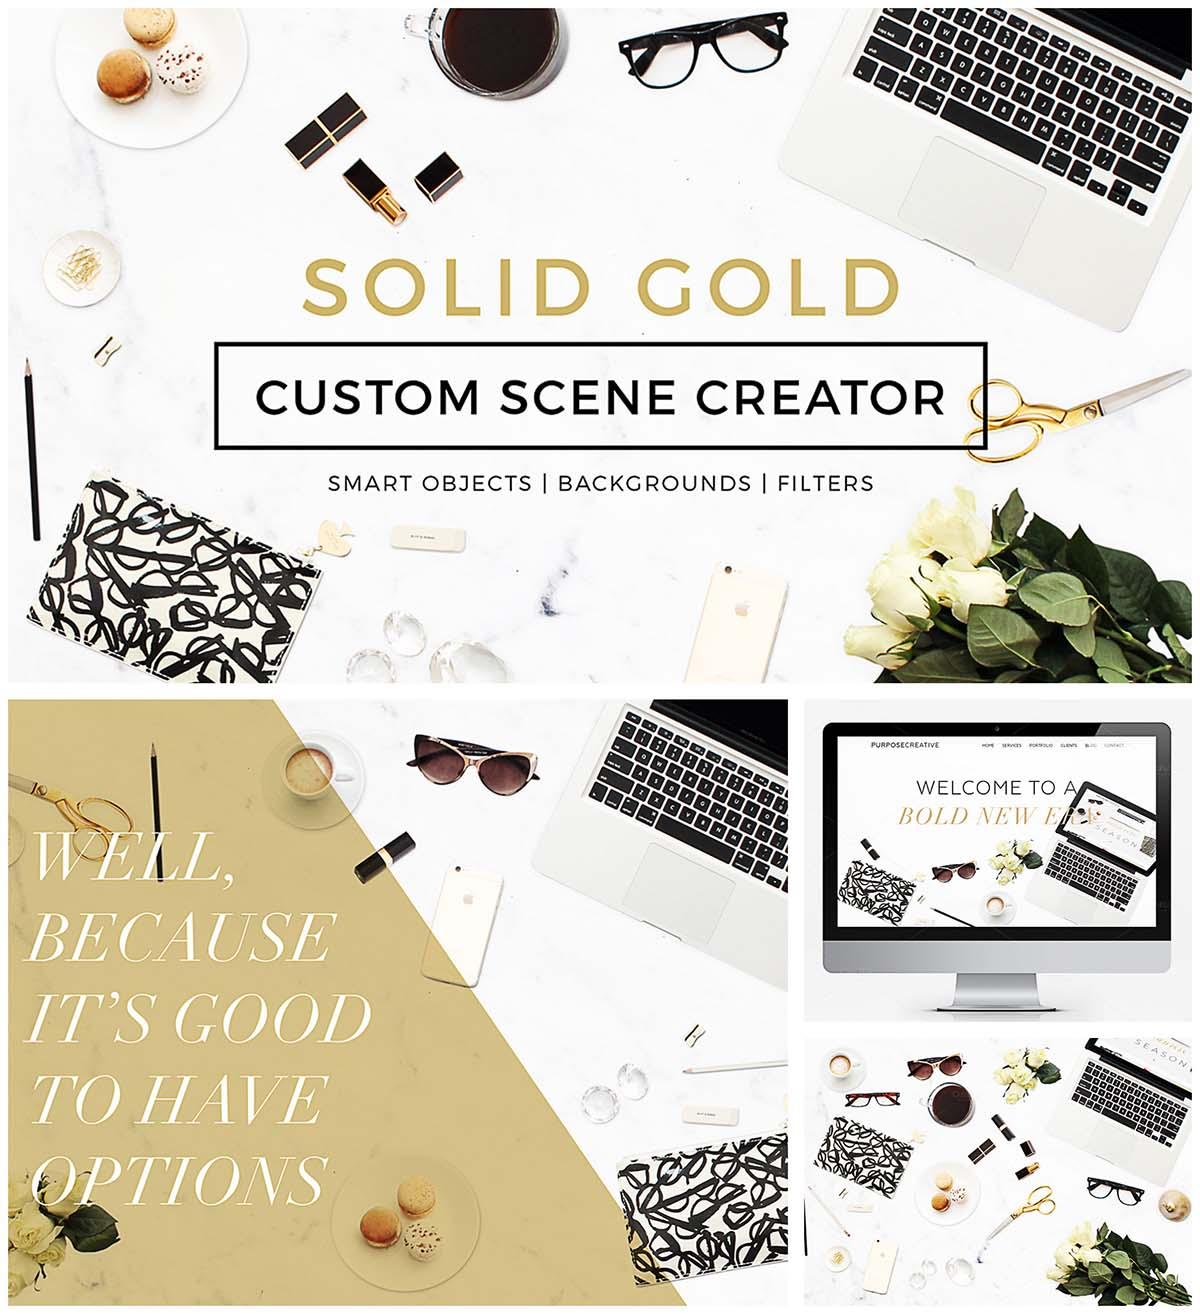 Solid gold custom scene creator